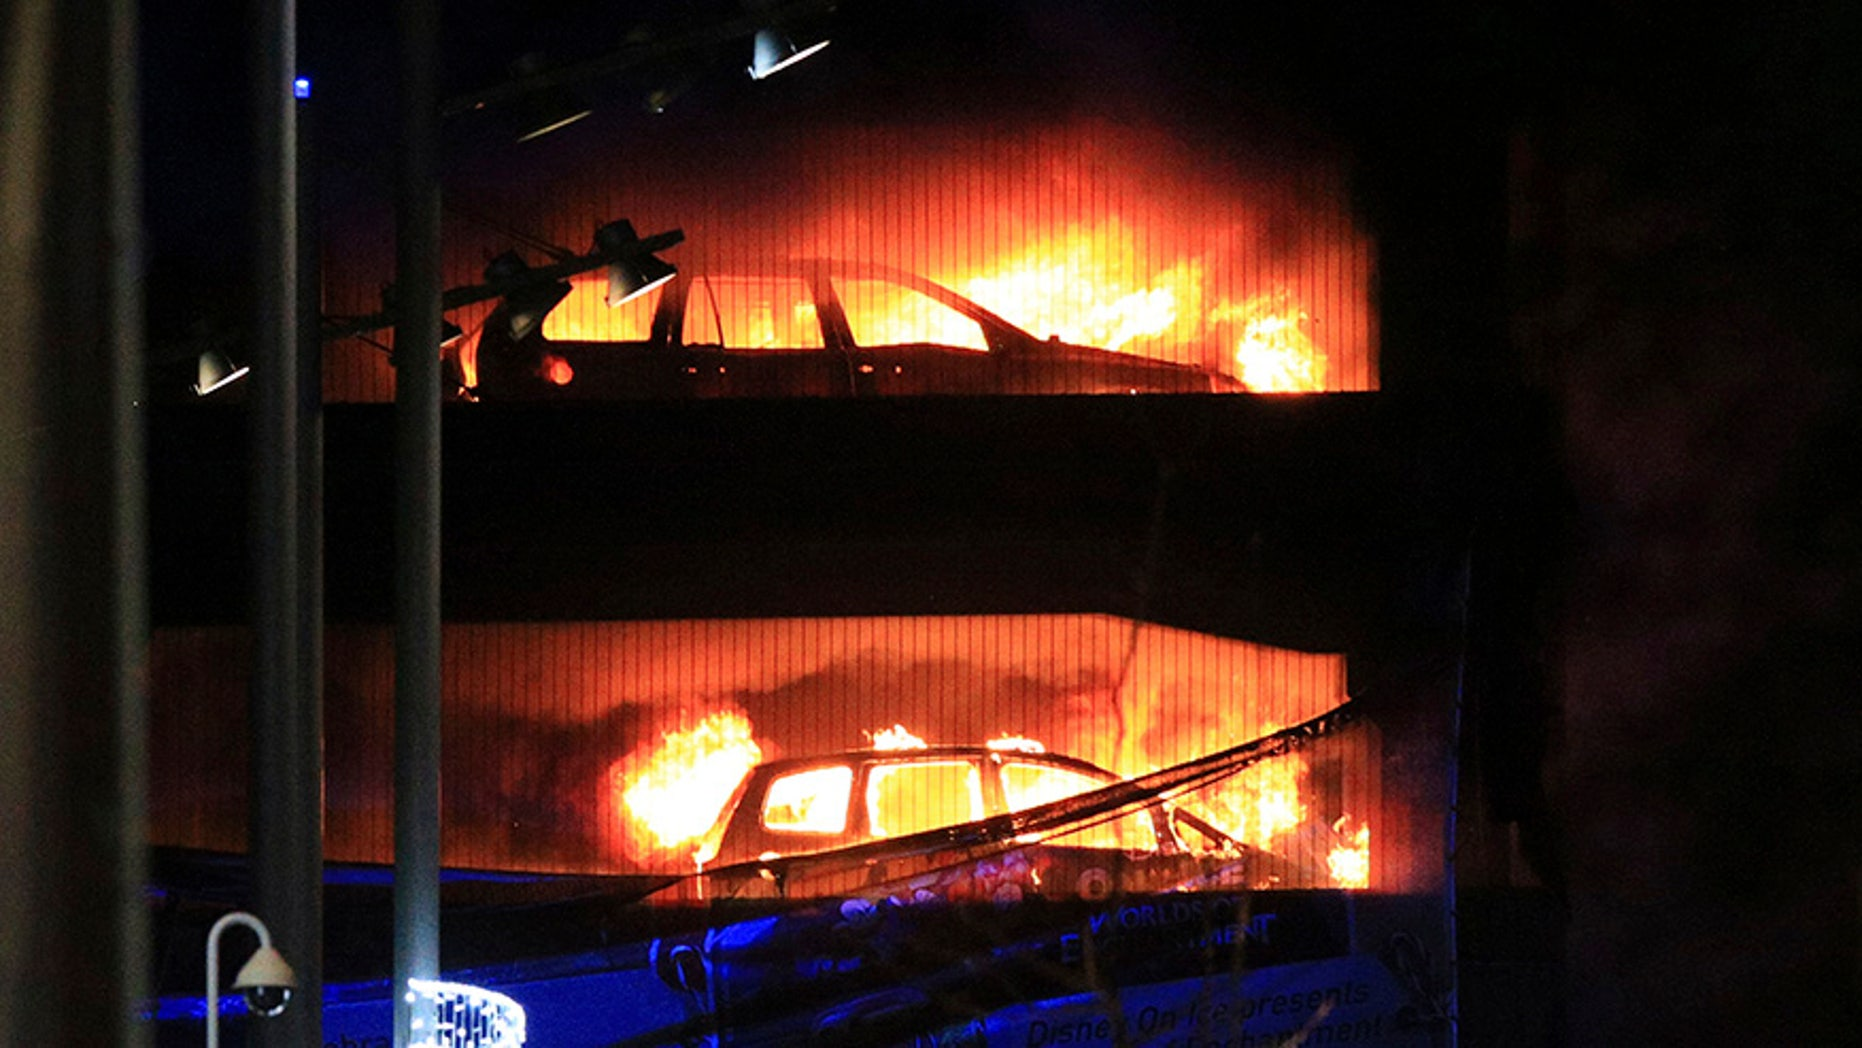 Vehicles burn during a blaze at a multi-storey car park at the Echo Arena on the waterfront in Liverpool, England Sunday, Dec. 31, 2017. An evening session of the Liverpool International Horse Show taking place in the Echo Arena was cancelled after horses were evacuated to safety. No one is known to have been injured in the fire. (Peter Byrne/PA via AP)